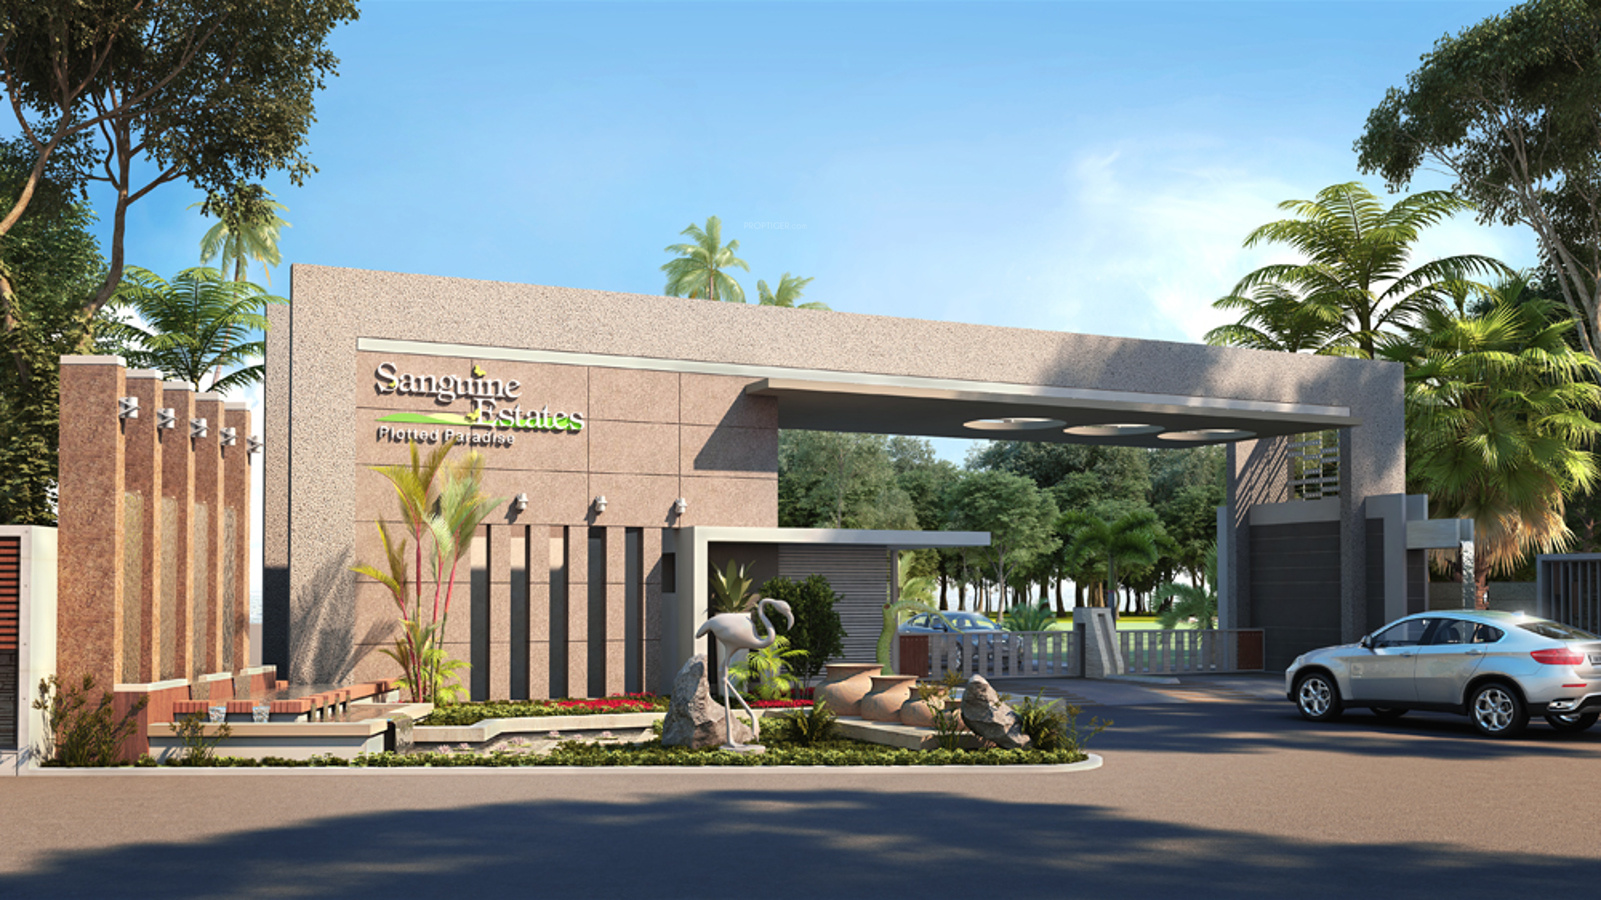 7227 sq ft plot for sale in pacifica companies sanguine for Pacifica house